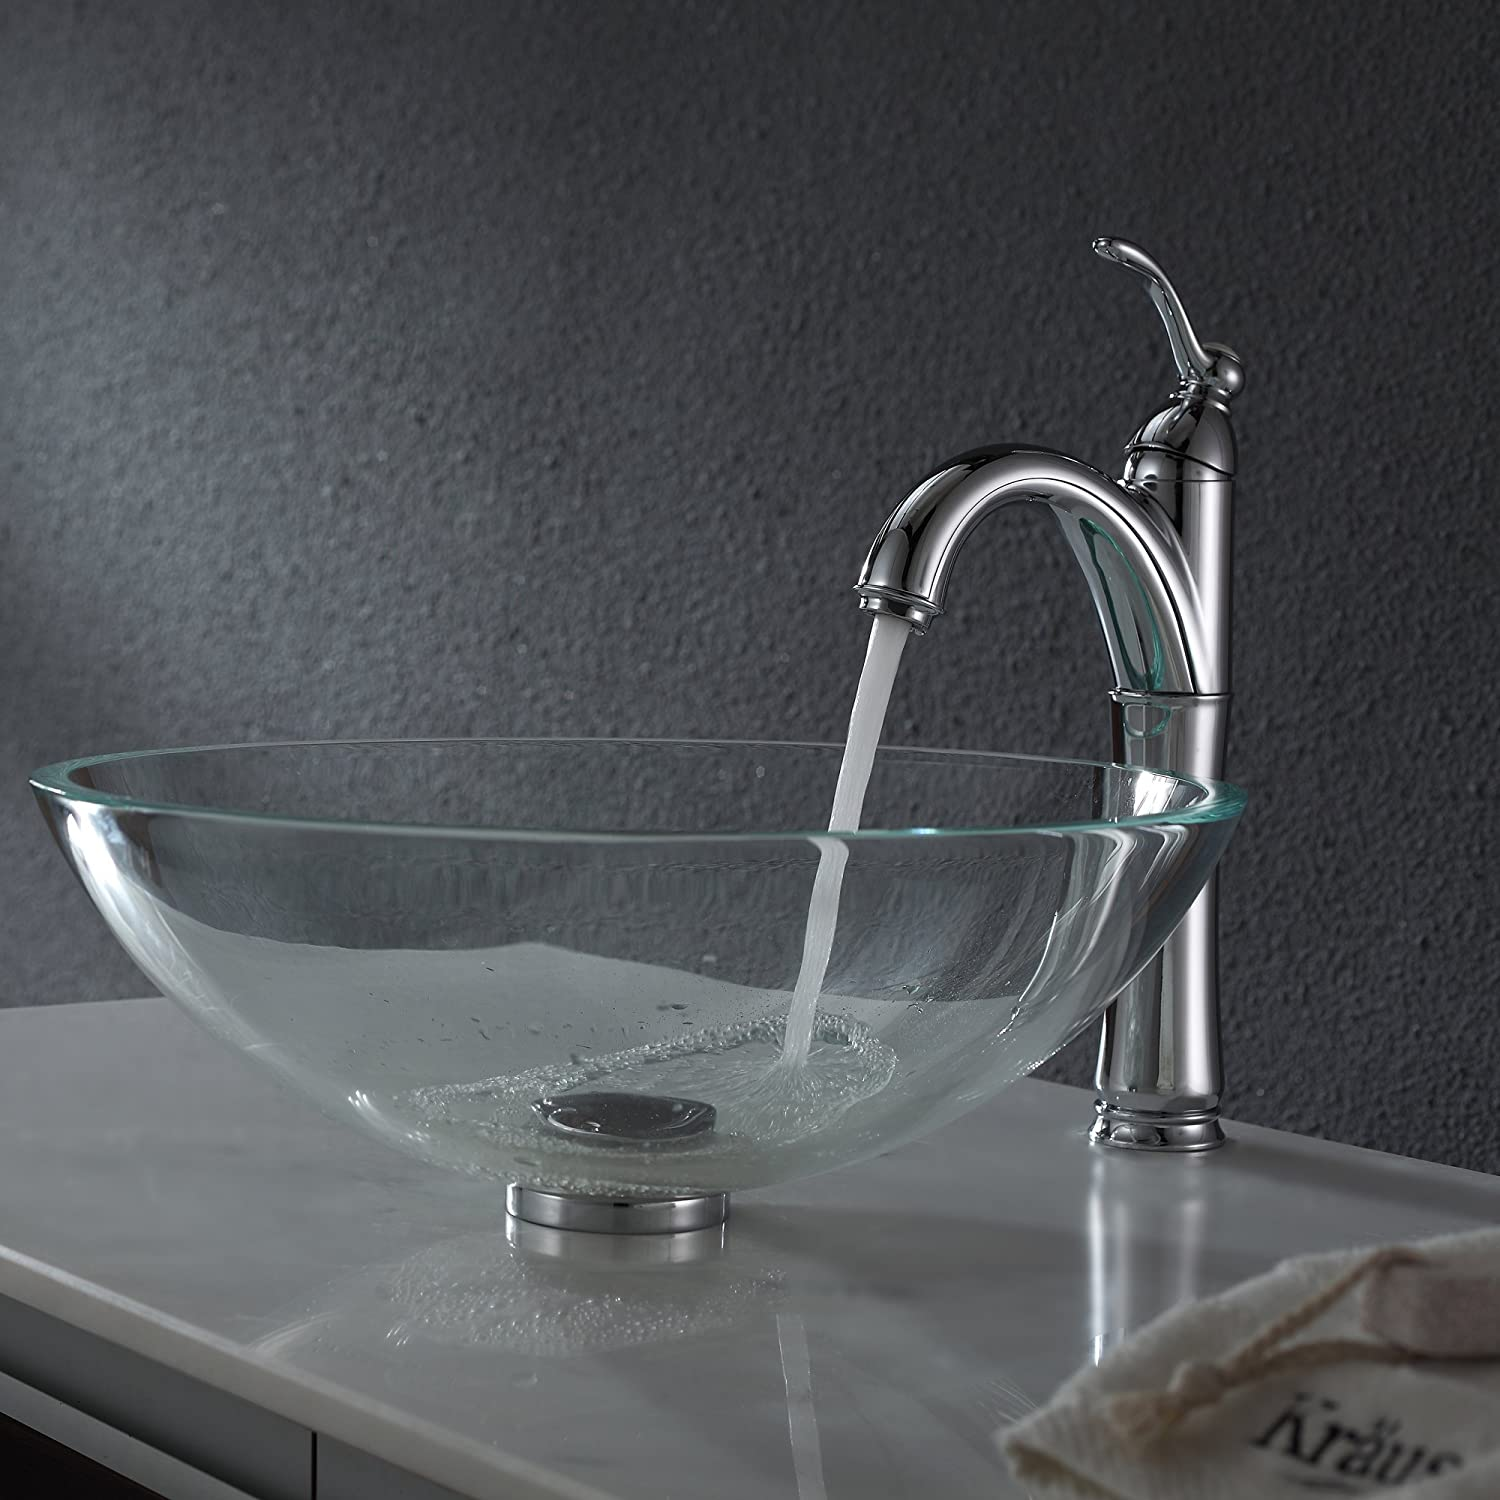 . Kraus GV 100 Crystal Clear Glass Vessel Bathroom Sink     Amazon com